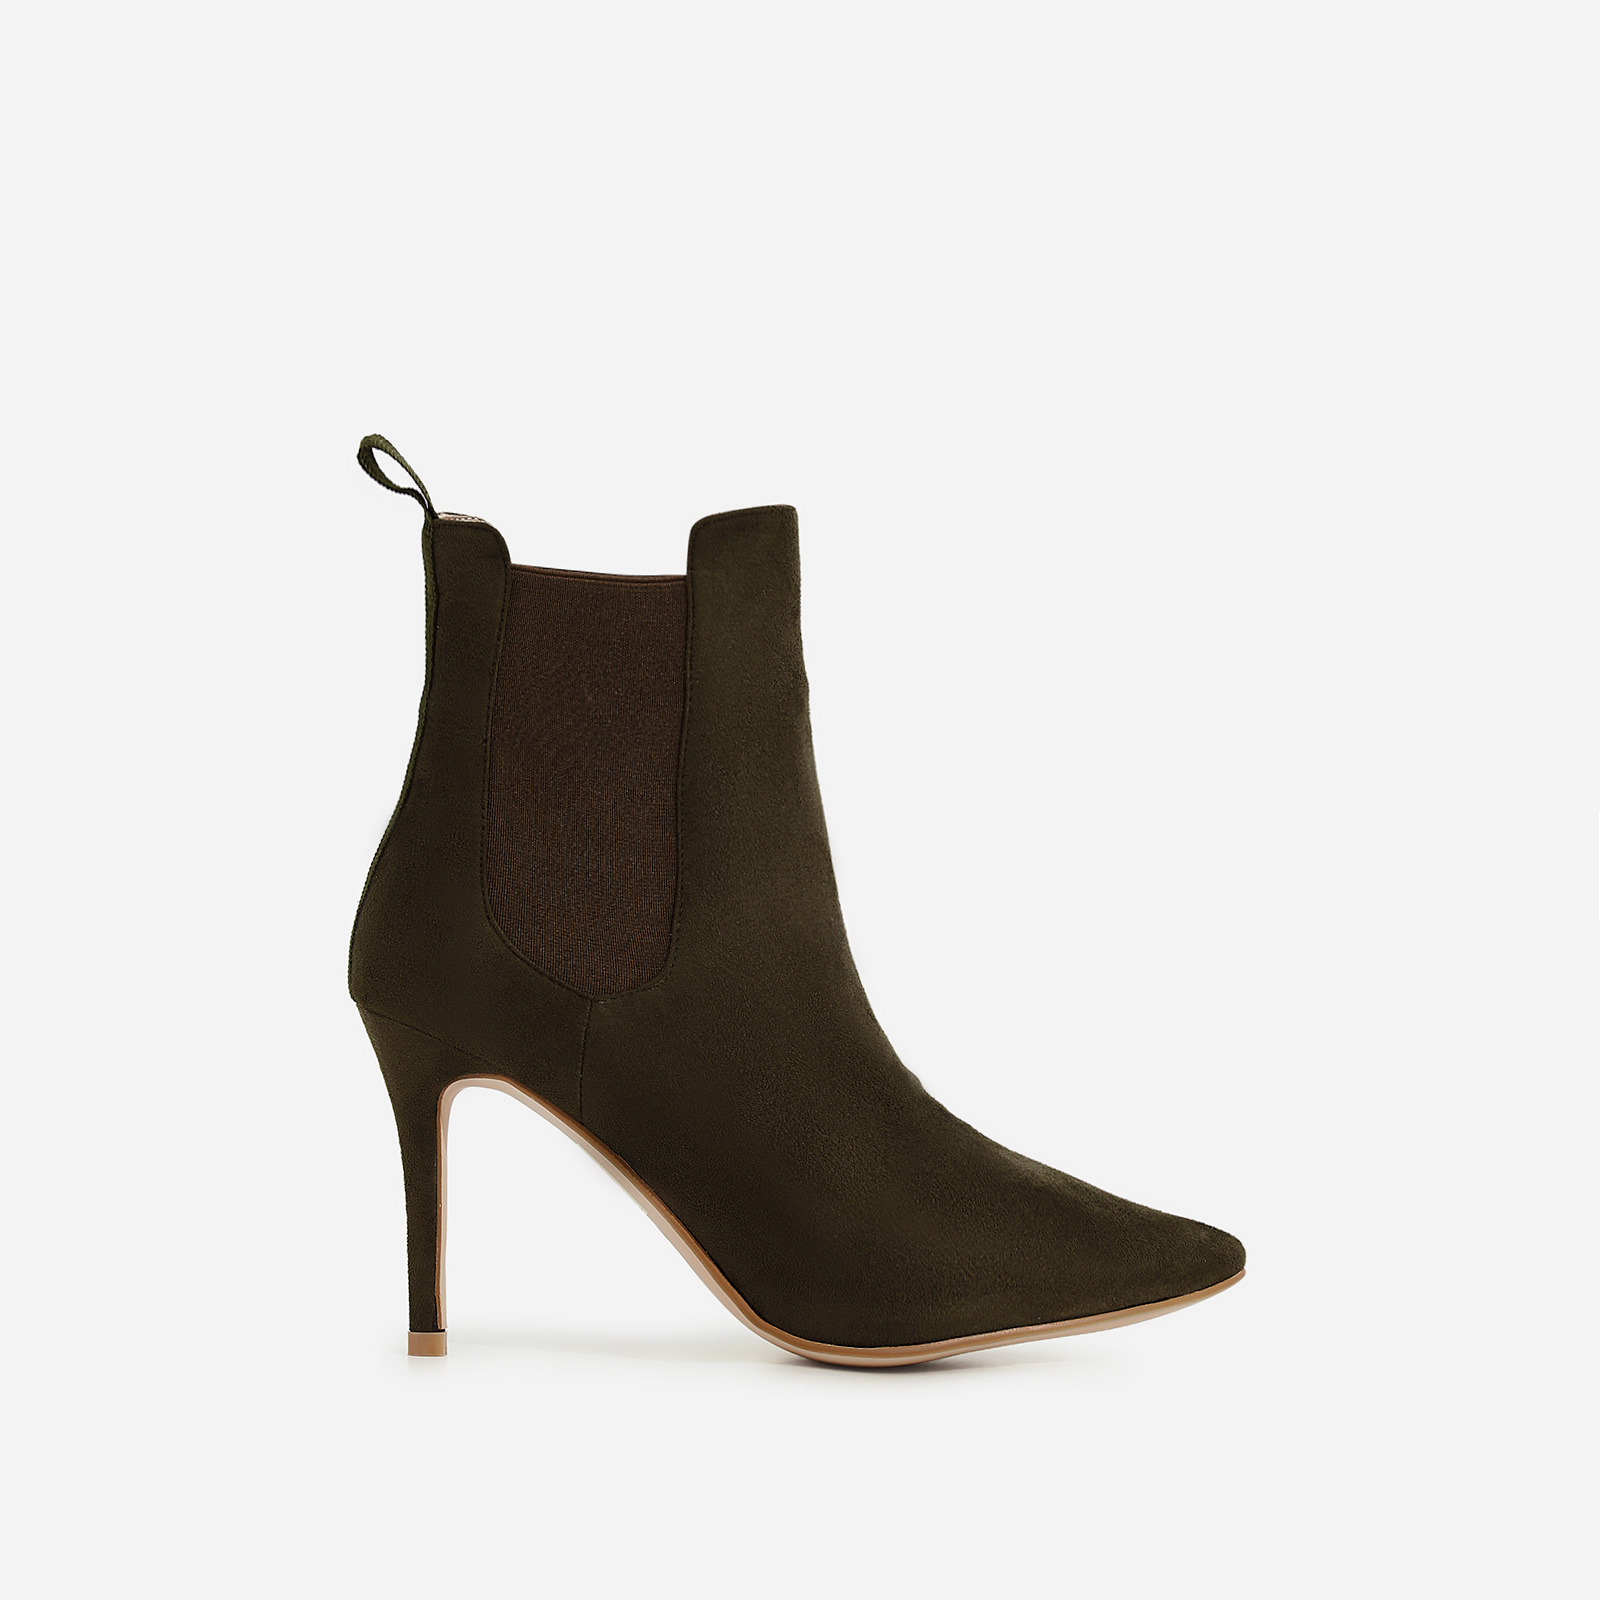 Hettie Elasticated Ankle Boot In Khaki Faux Suede